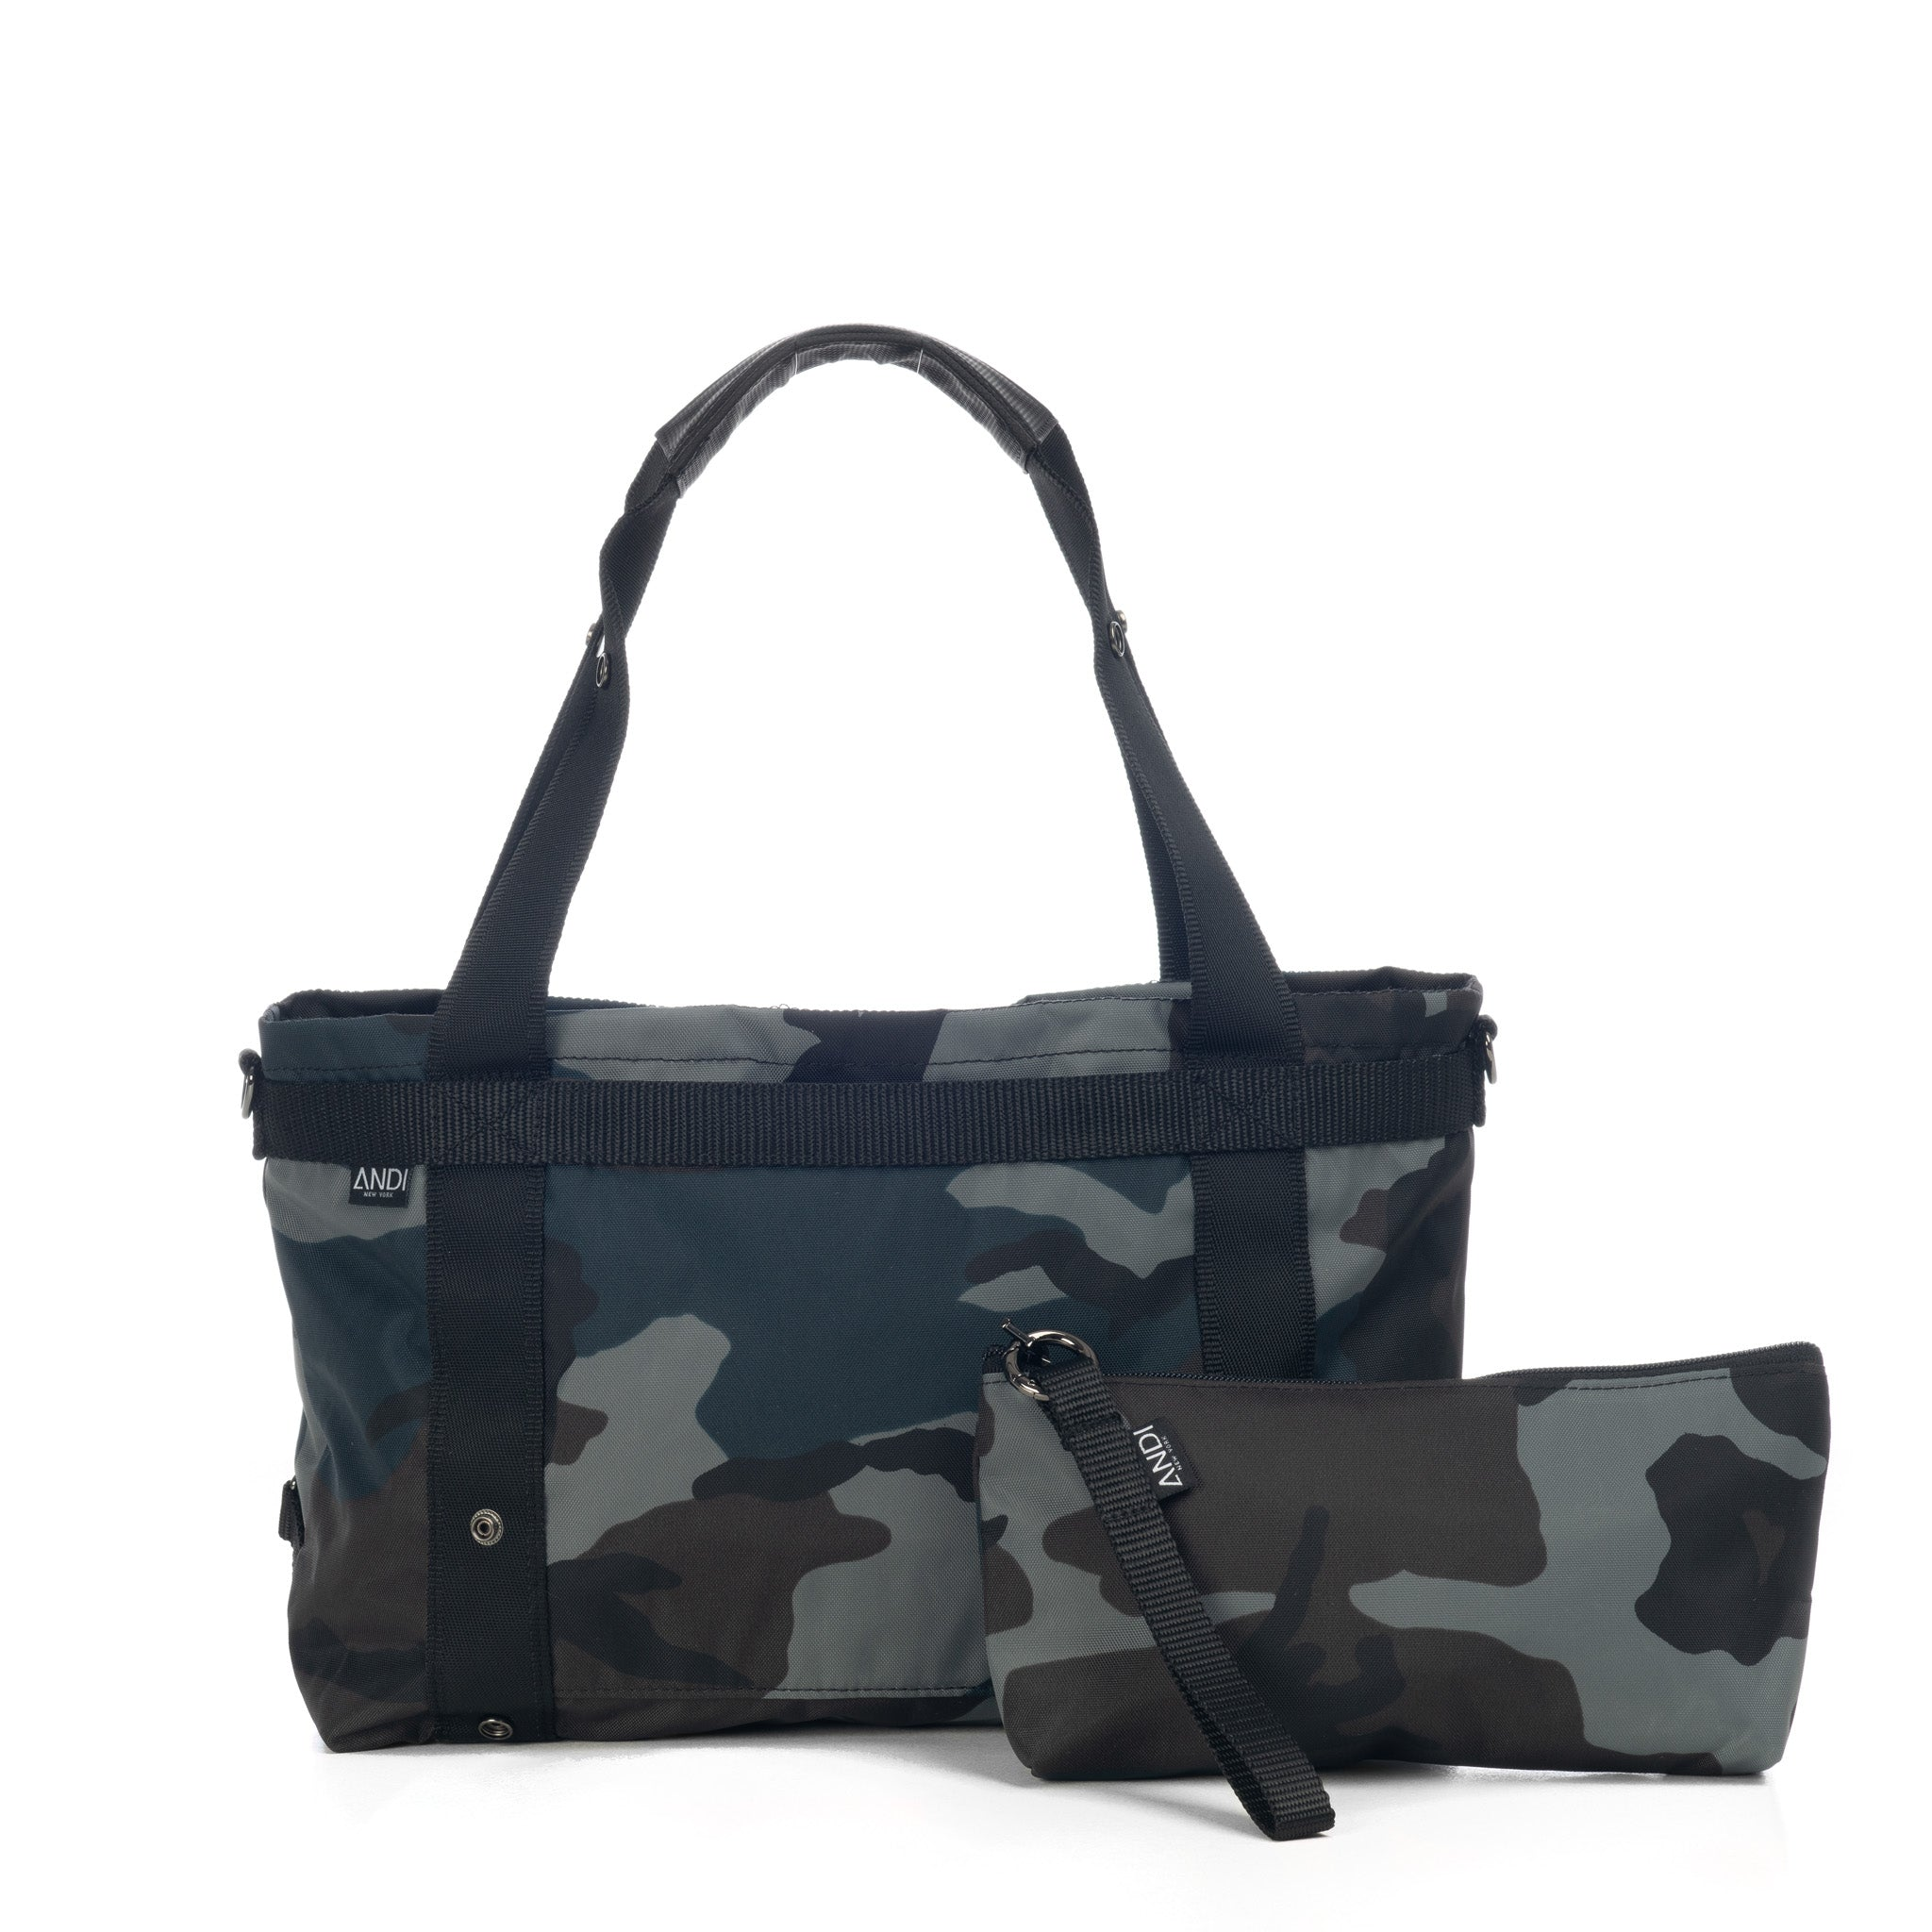 The ANDI Small - Ink Camo